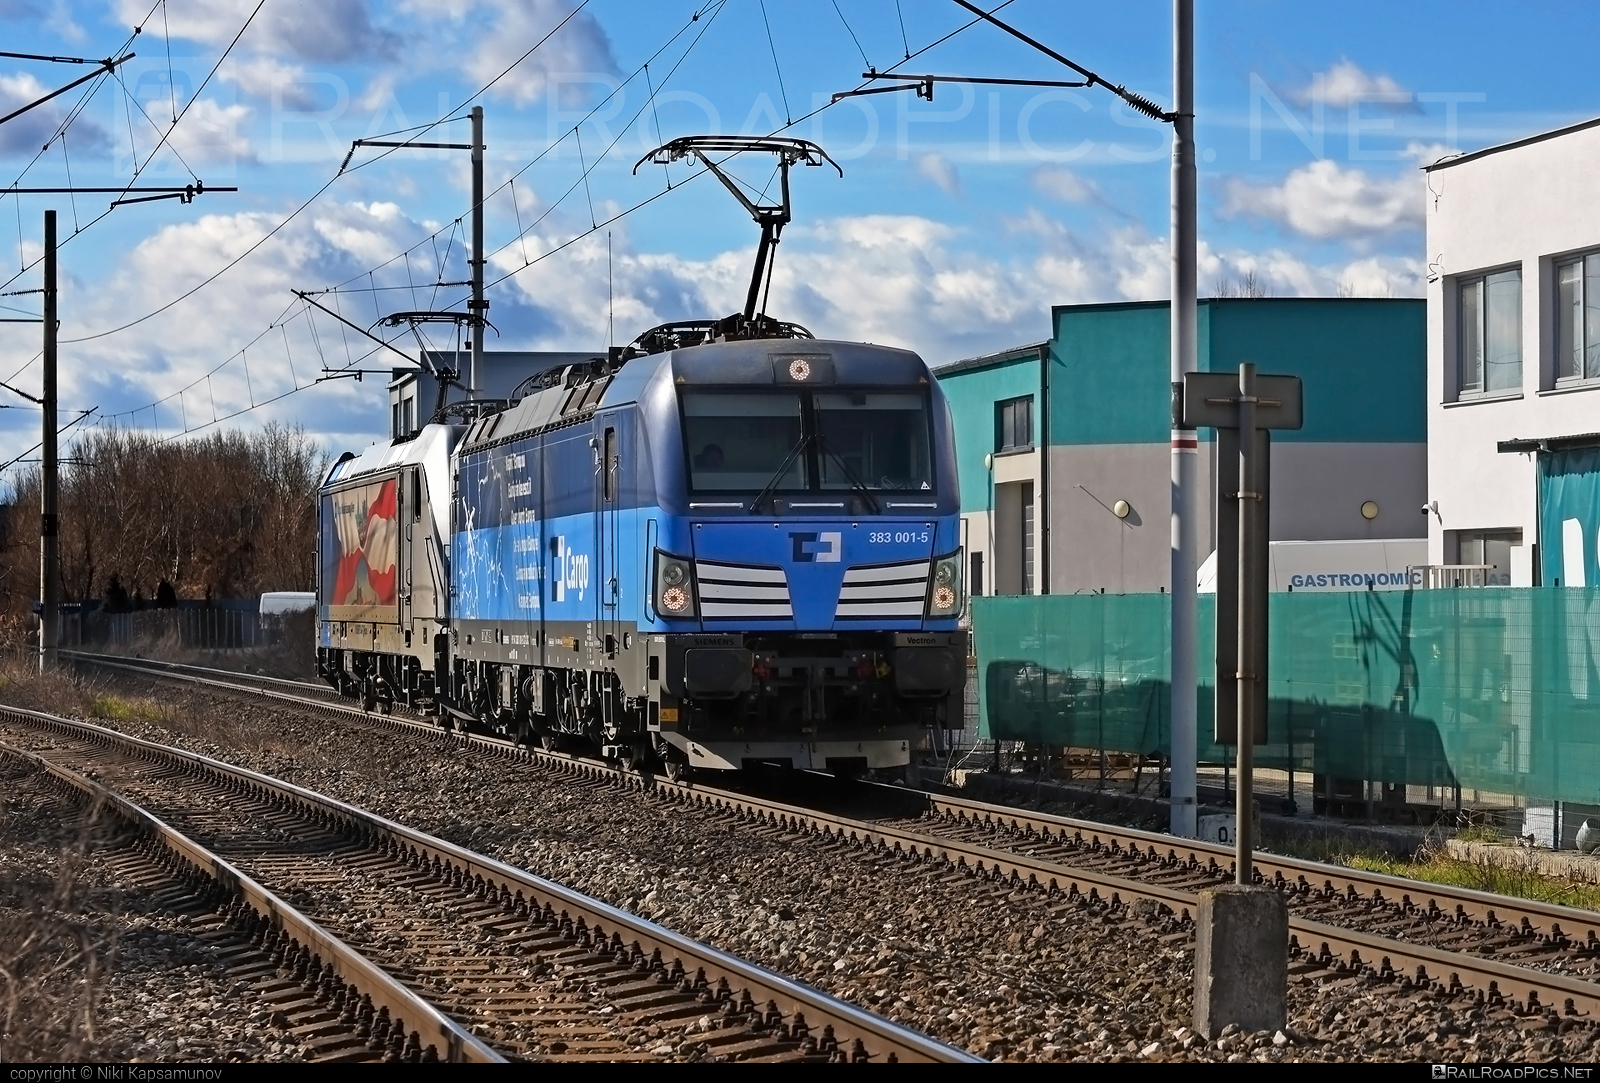 Siemens Vectron MS - 383 001-5 operated by ČD Cargo, a.s. #cdcargo #cdcargoniederlassungwien #siemens #siemensvectron #siemensvectronms #vectron #vectronms